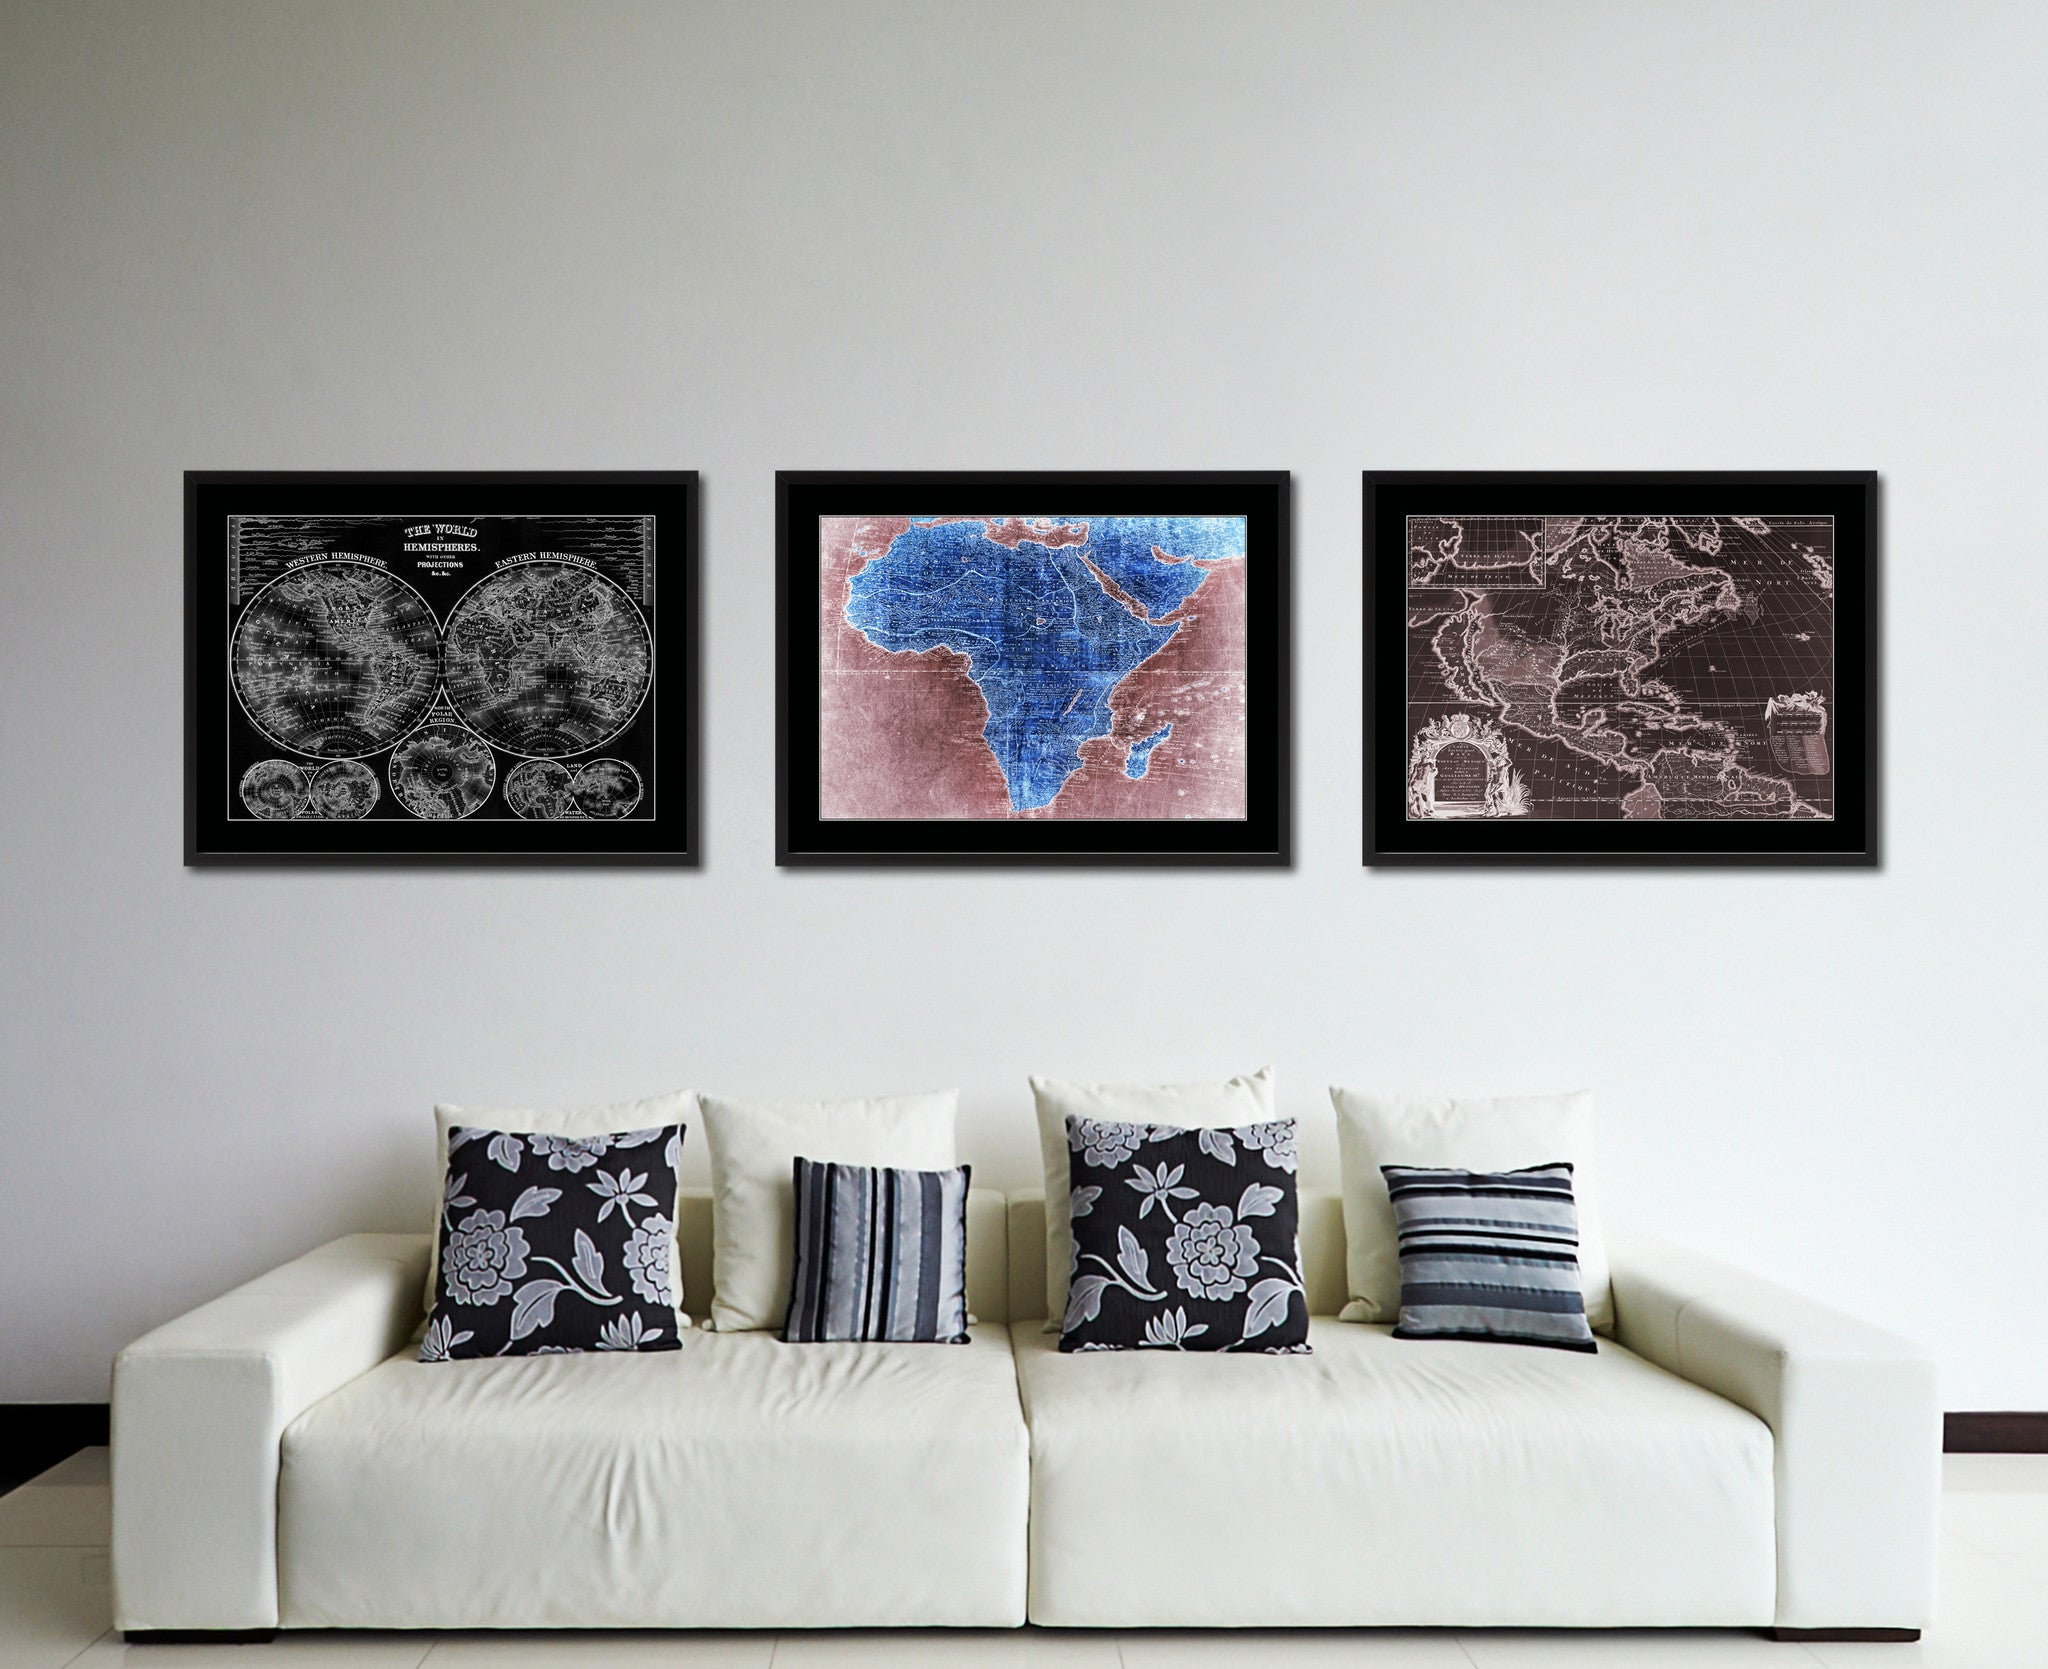 Africa Mapmaker Vintage Vivid Color Map Canvas Print, Picture Frame Home Decor Wall Art Office Decoration Gift Ideas